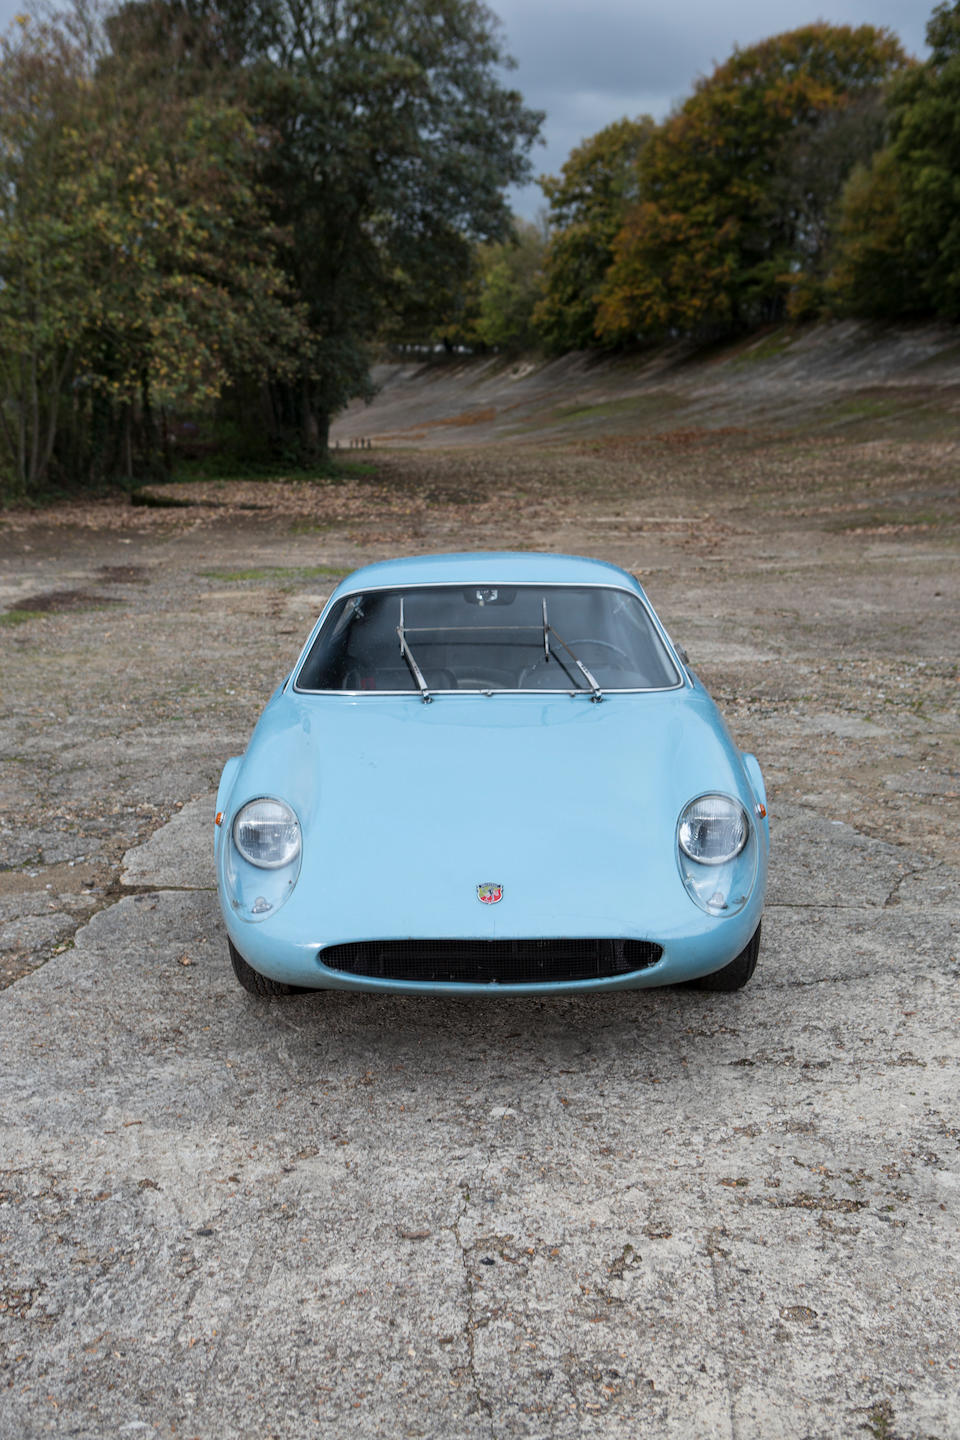 From the Maranello Rosso Collection,1963-65 Abarth Simca 'Long-Nose World Champion' Coupe   Chassis no. 130S-0091